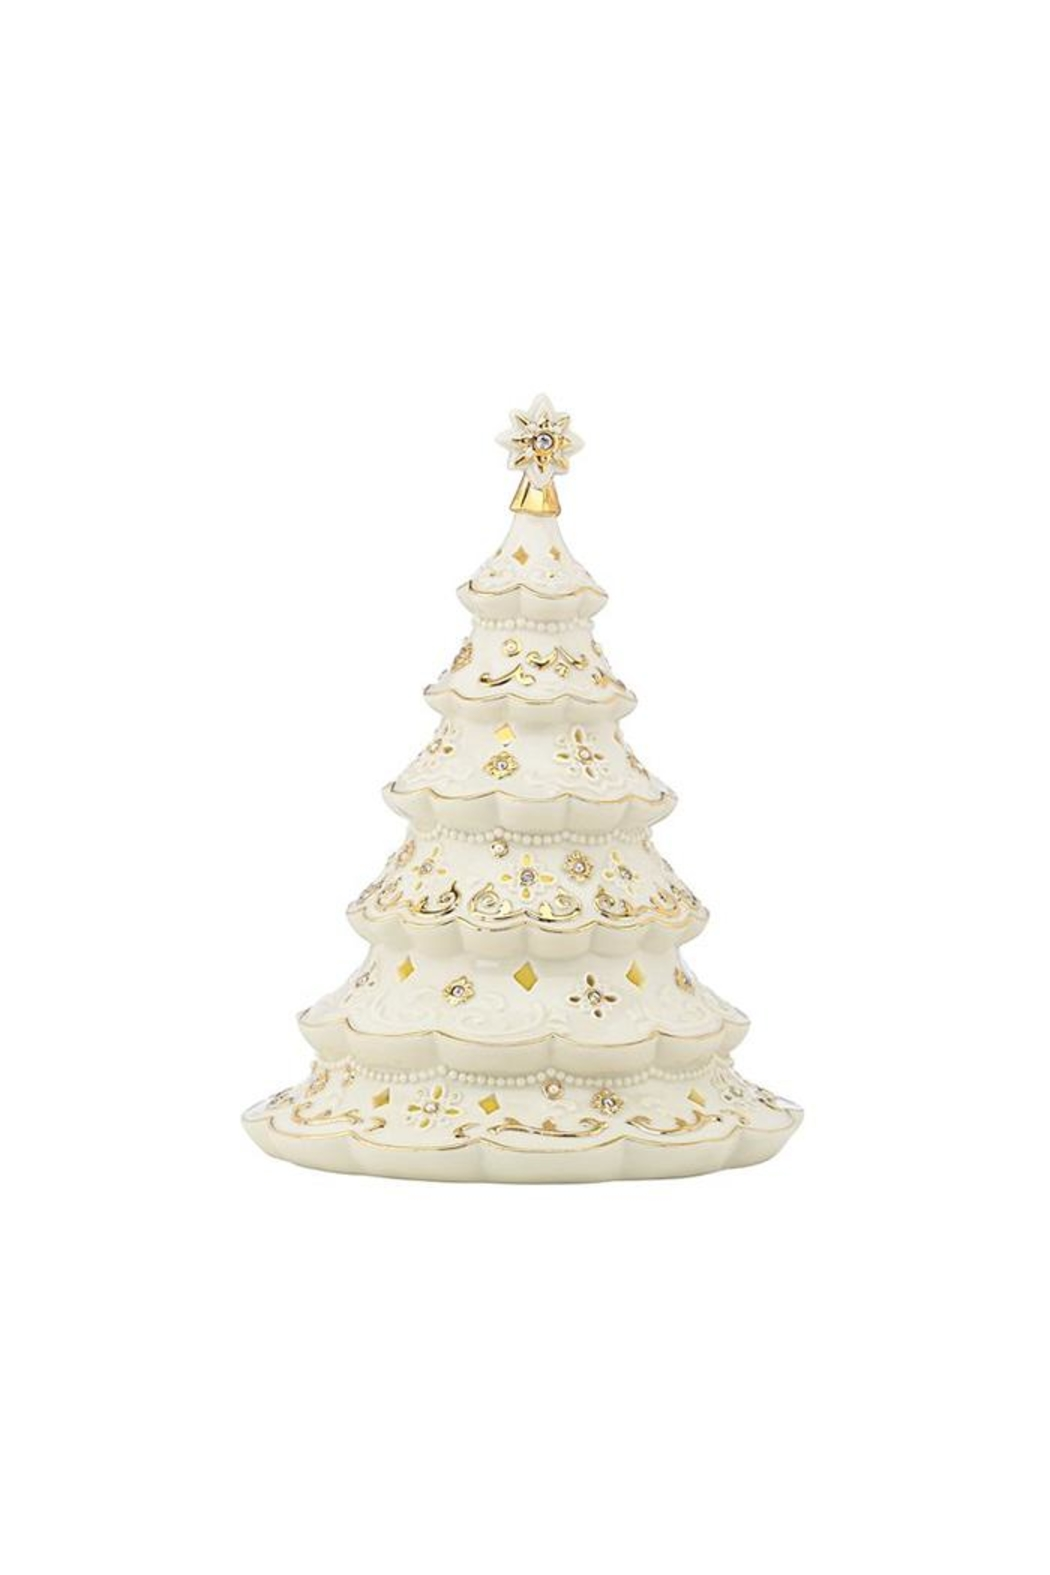 Lenox florentine pearl lighted tree from new york city by lenox florentine pearl lighted tree front cropped image reviewsmspy